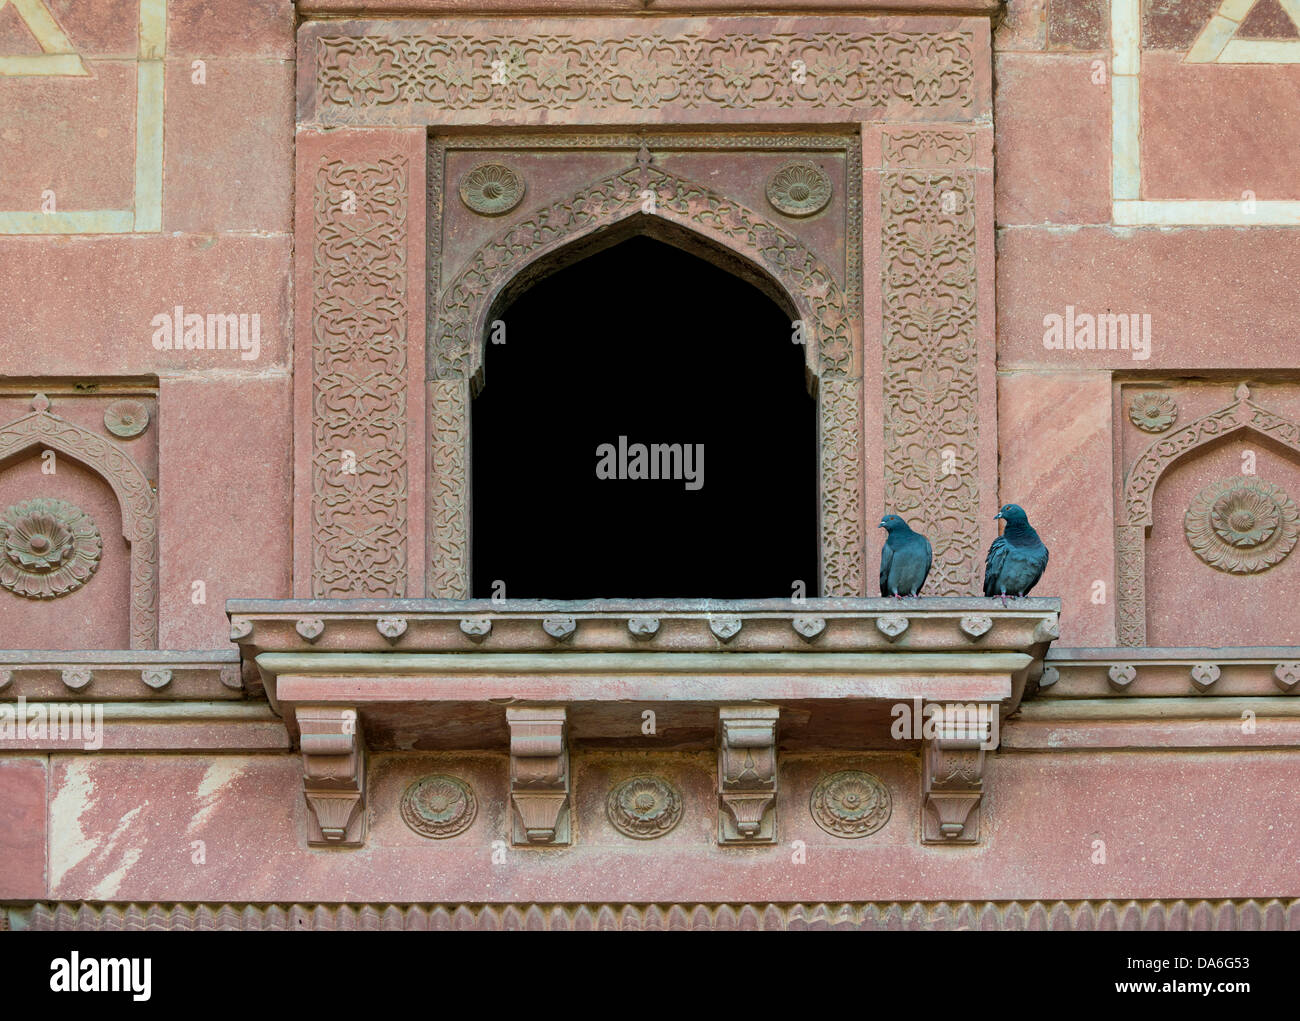 carved balcony stockfotos carved balcony bilder alamy. Black Bedroom Furniture Sets. Home Design Ideas